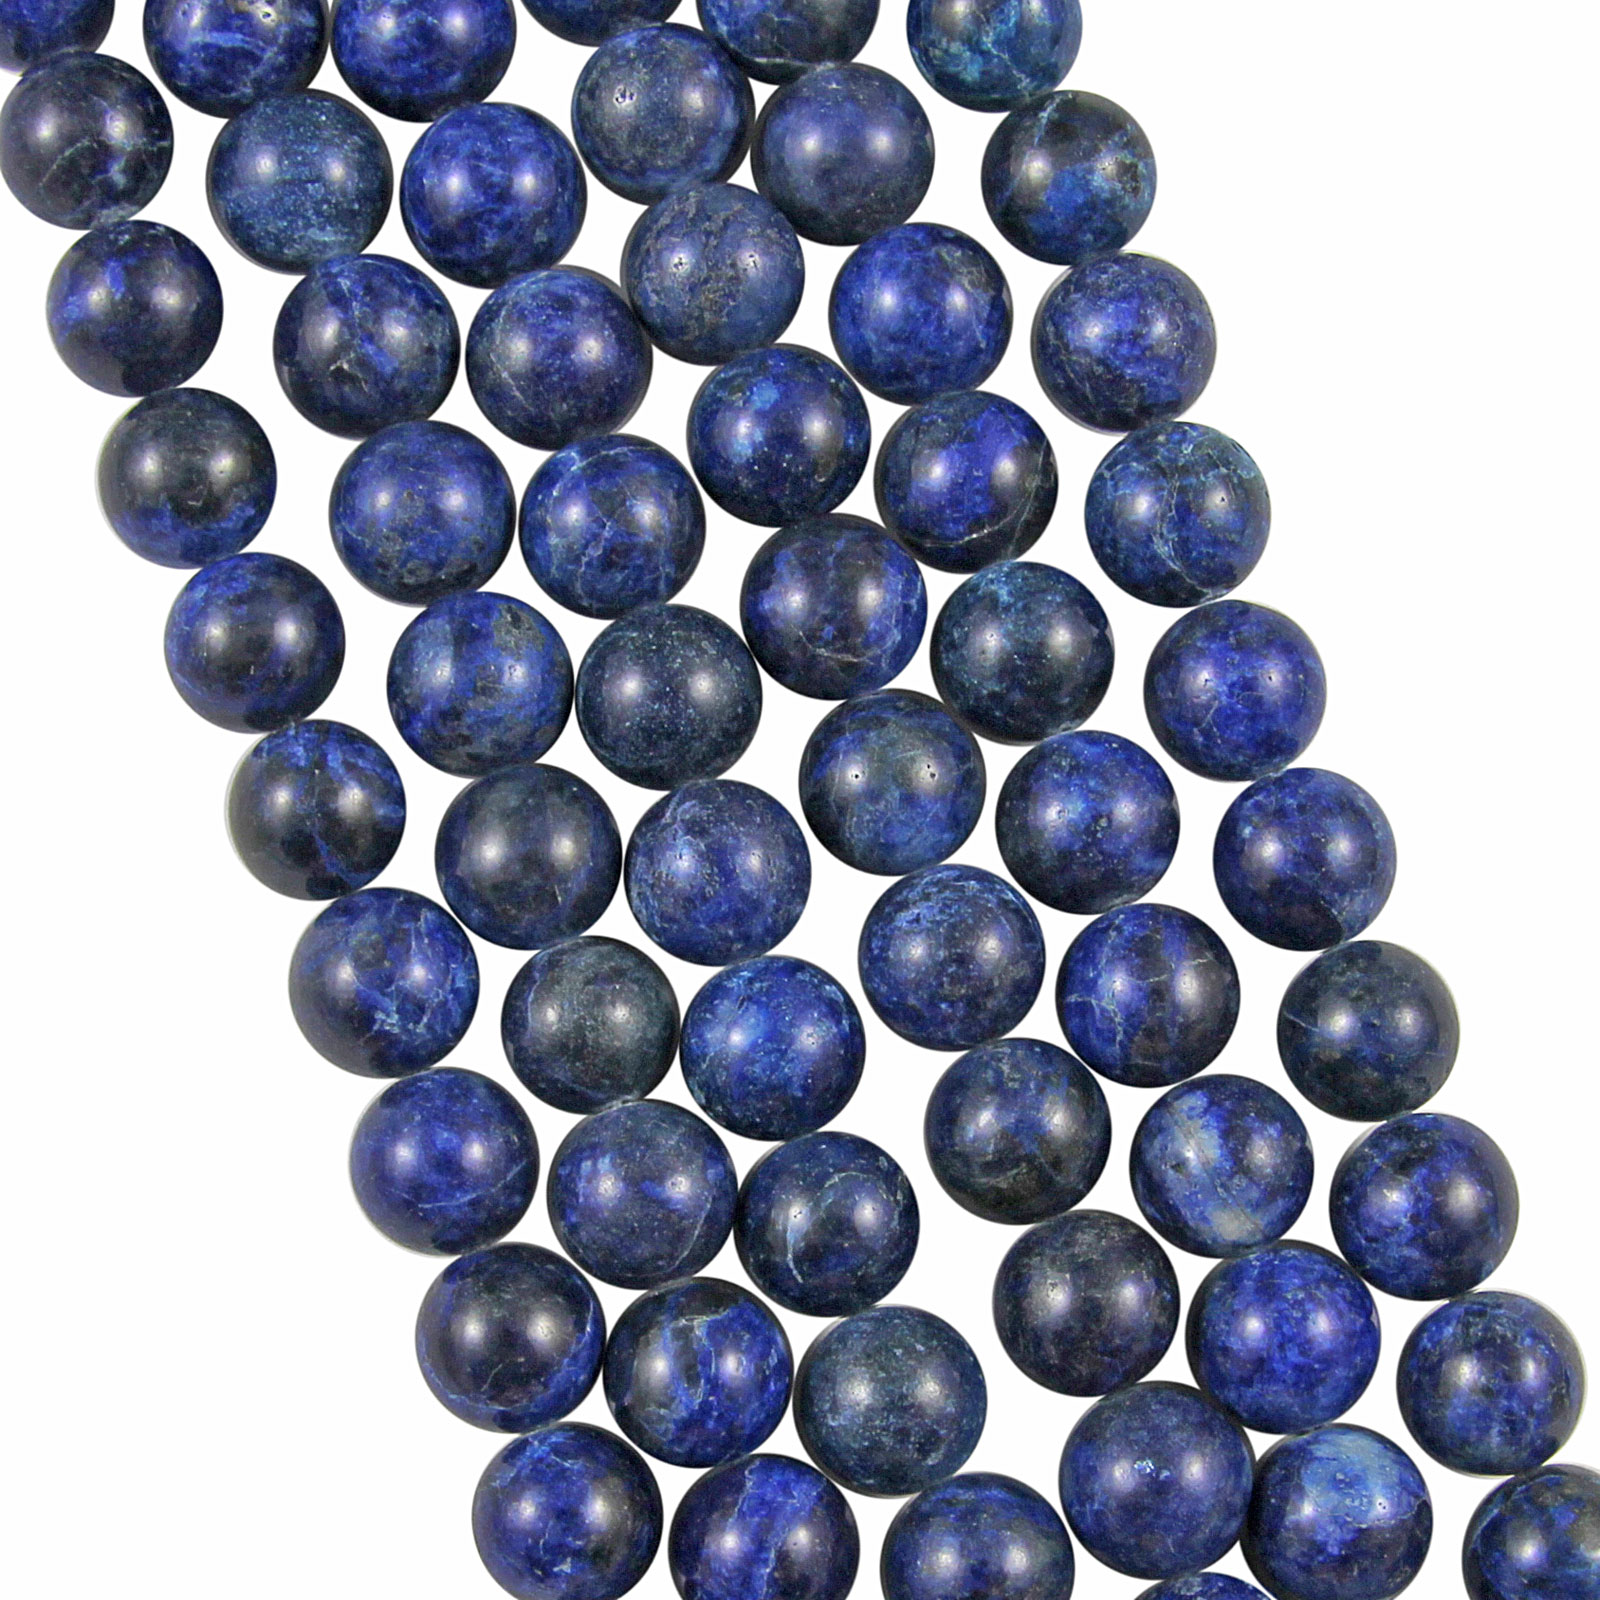 16-034-Strand-Semi-Precious-Gemstone-Crystal-Round-Beads-10mm-37-40-Beads